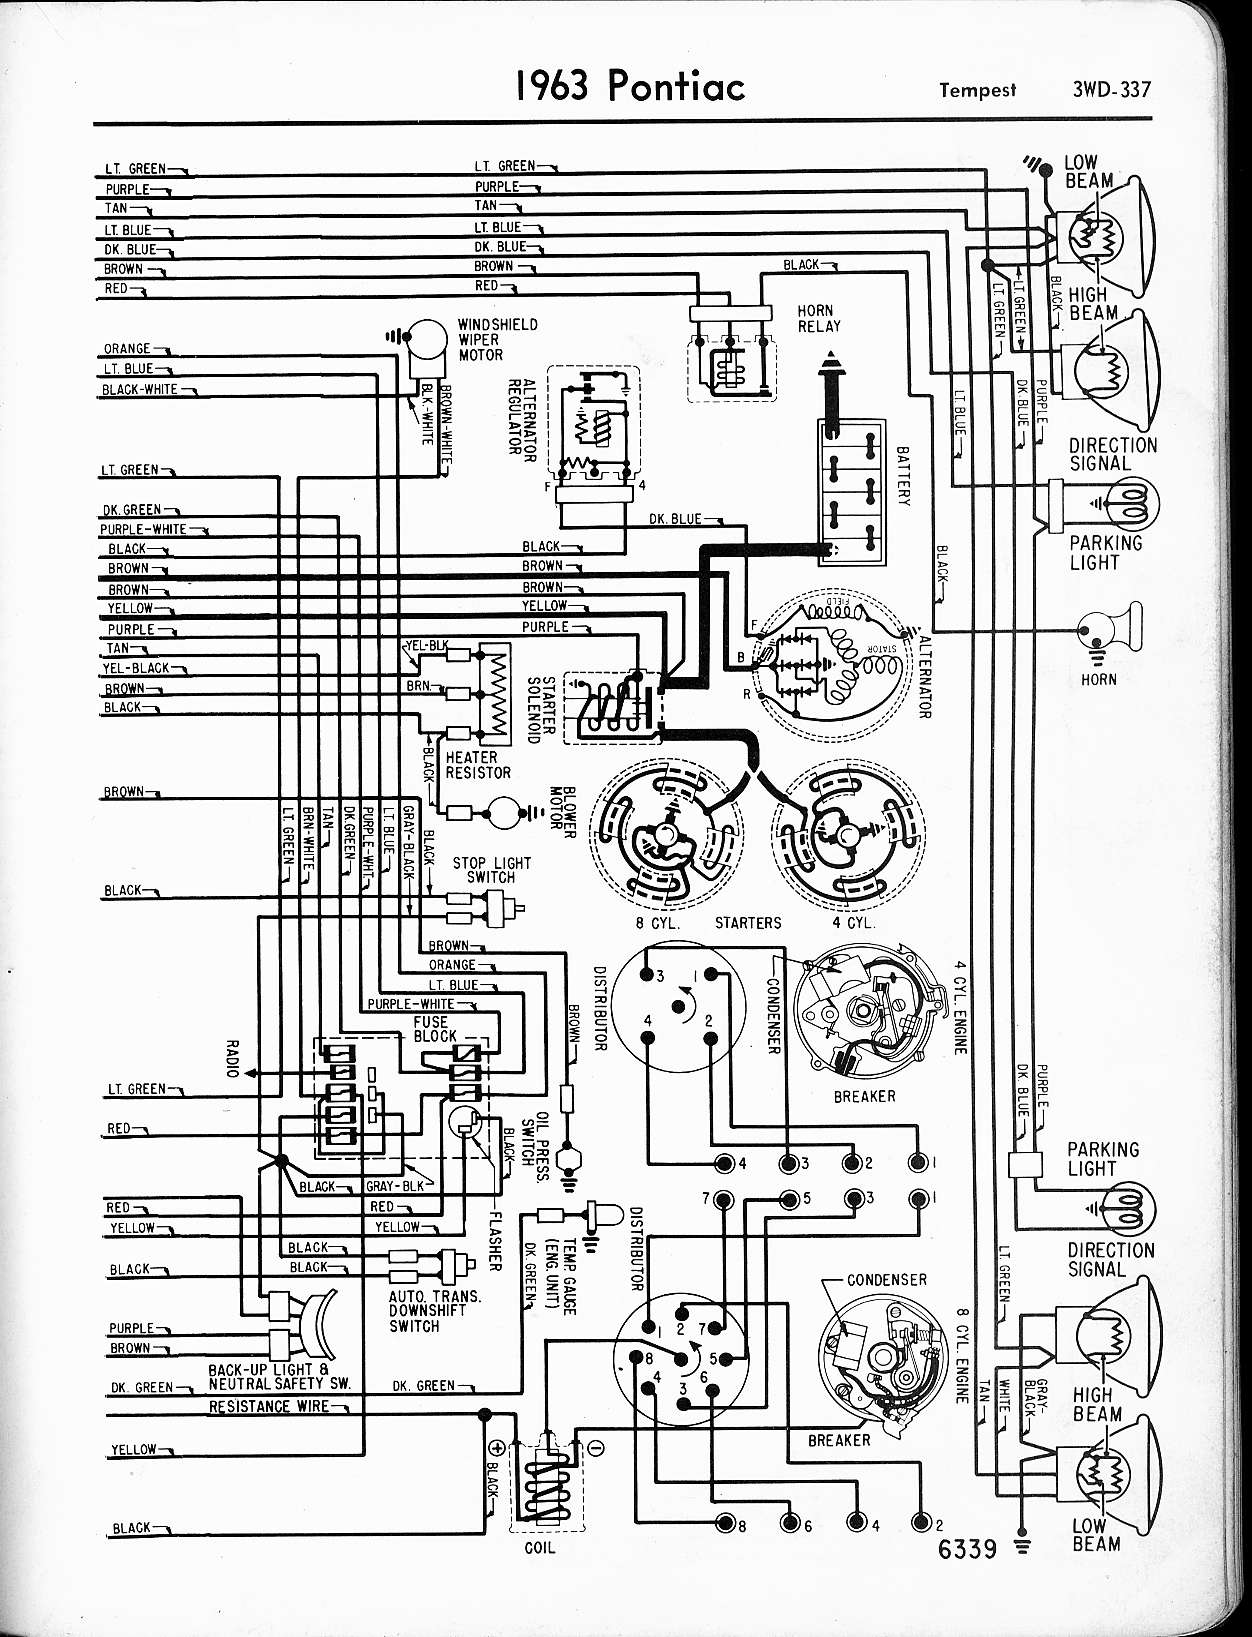 1971 Gto Wiring Harness Reinvent Your Diagram 69 Buick Ignition 68 Pontiac Detailed Schematics Rh Lelandlutheran Com 1968 1969